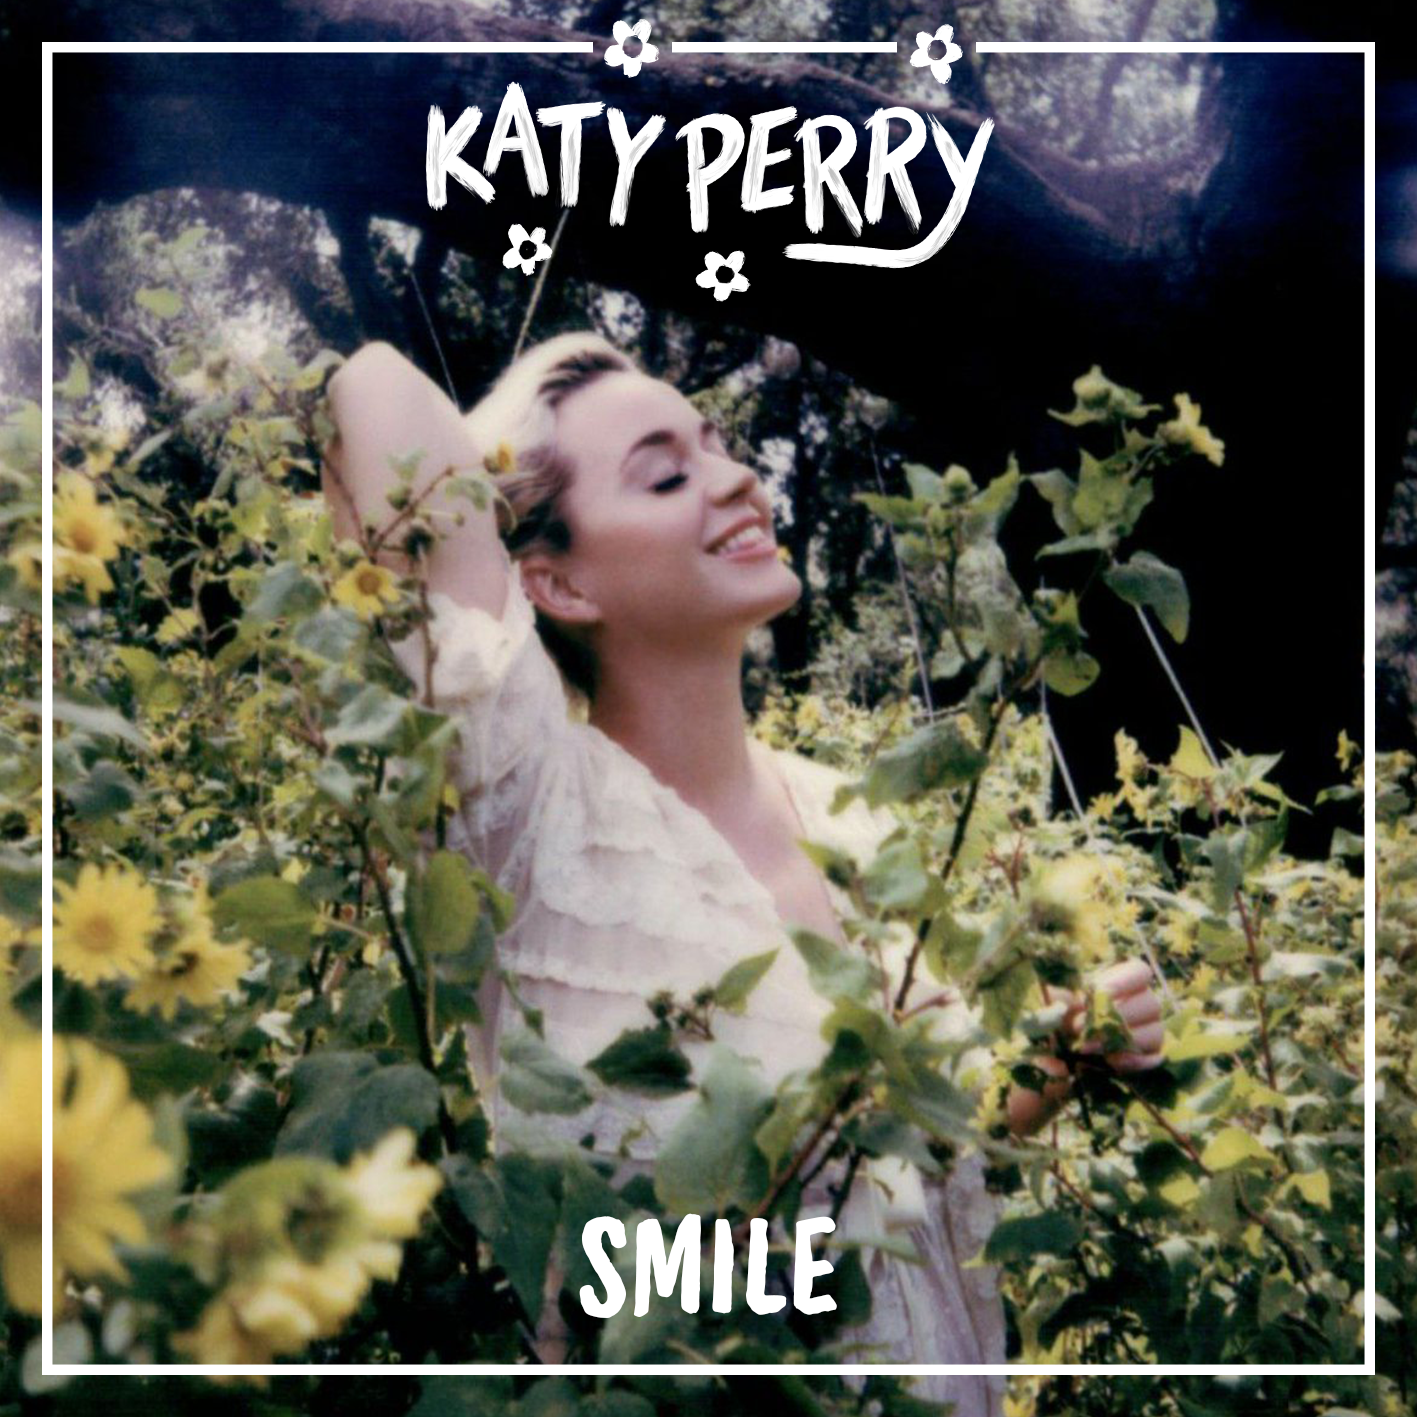 katy-perry-smile-moonchild.png